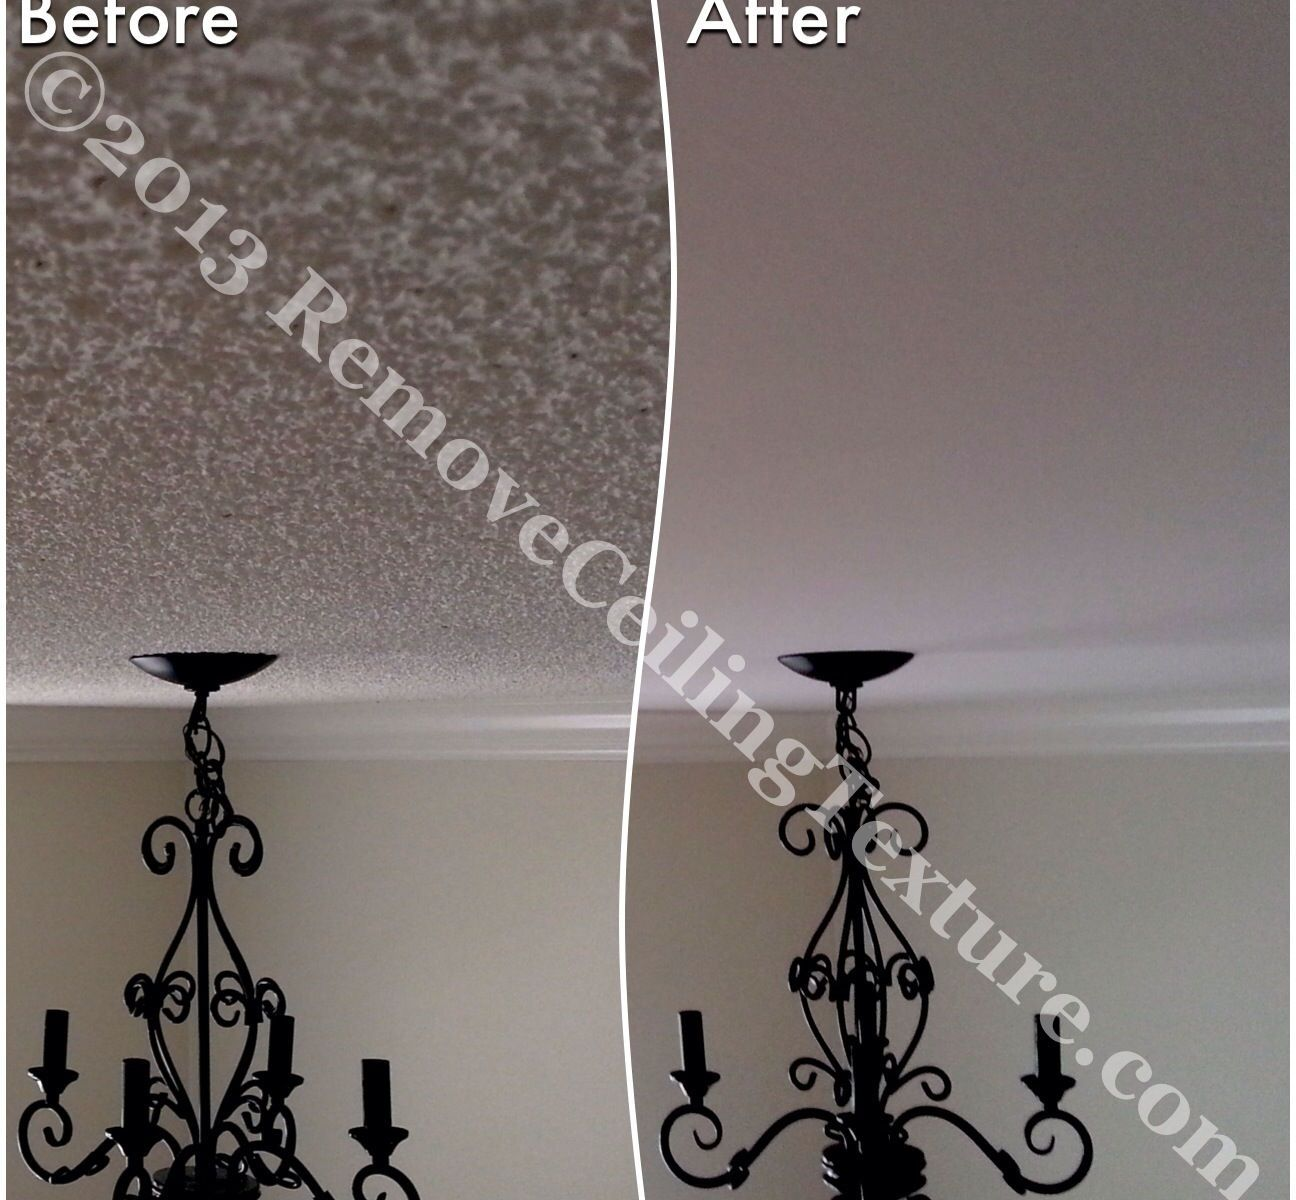 Instead of drywalling over textured ceilings, why not have the ceiling texture removed?